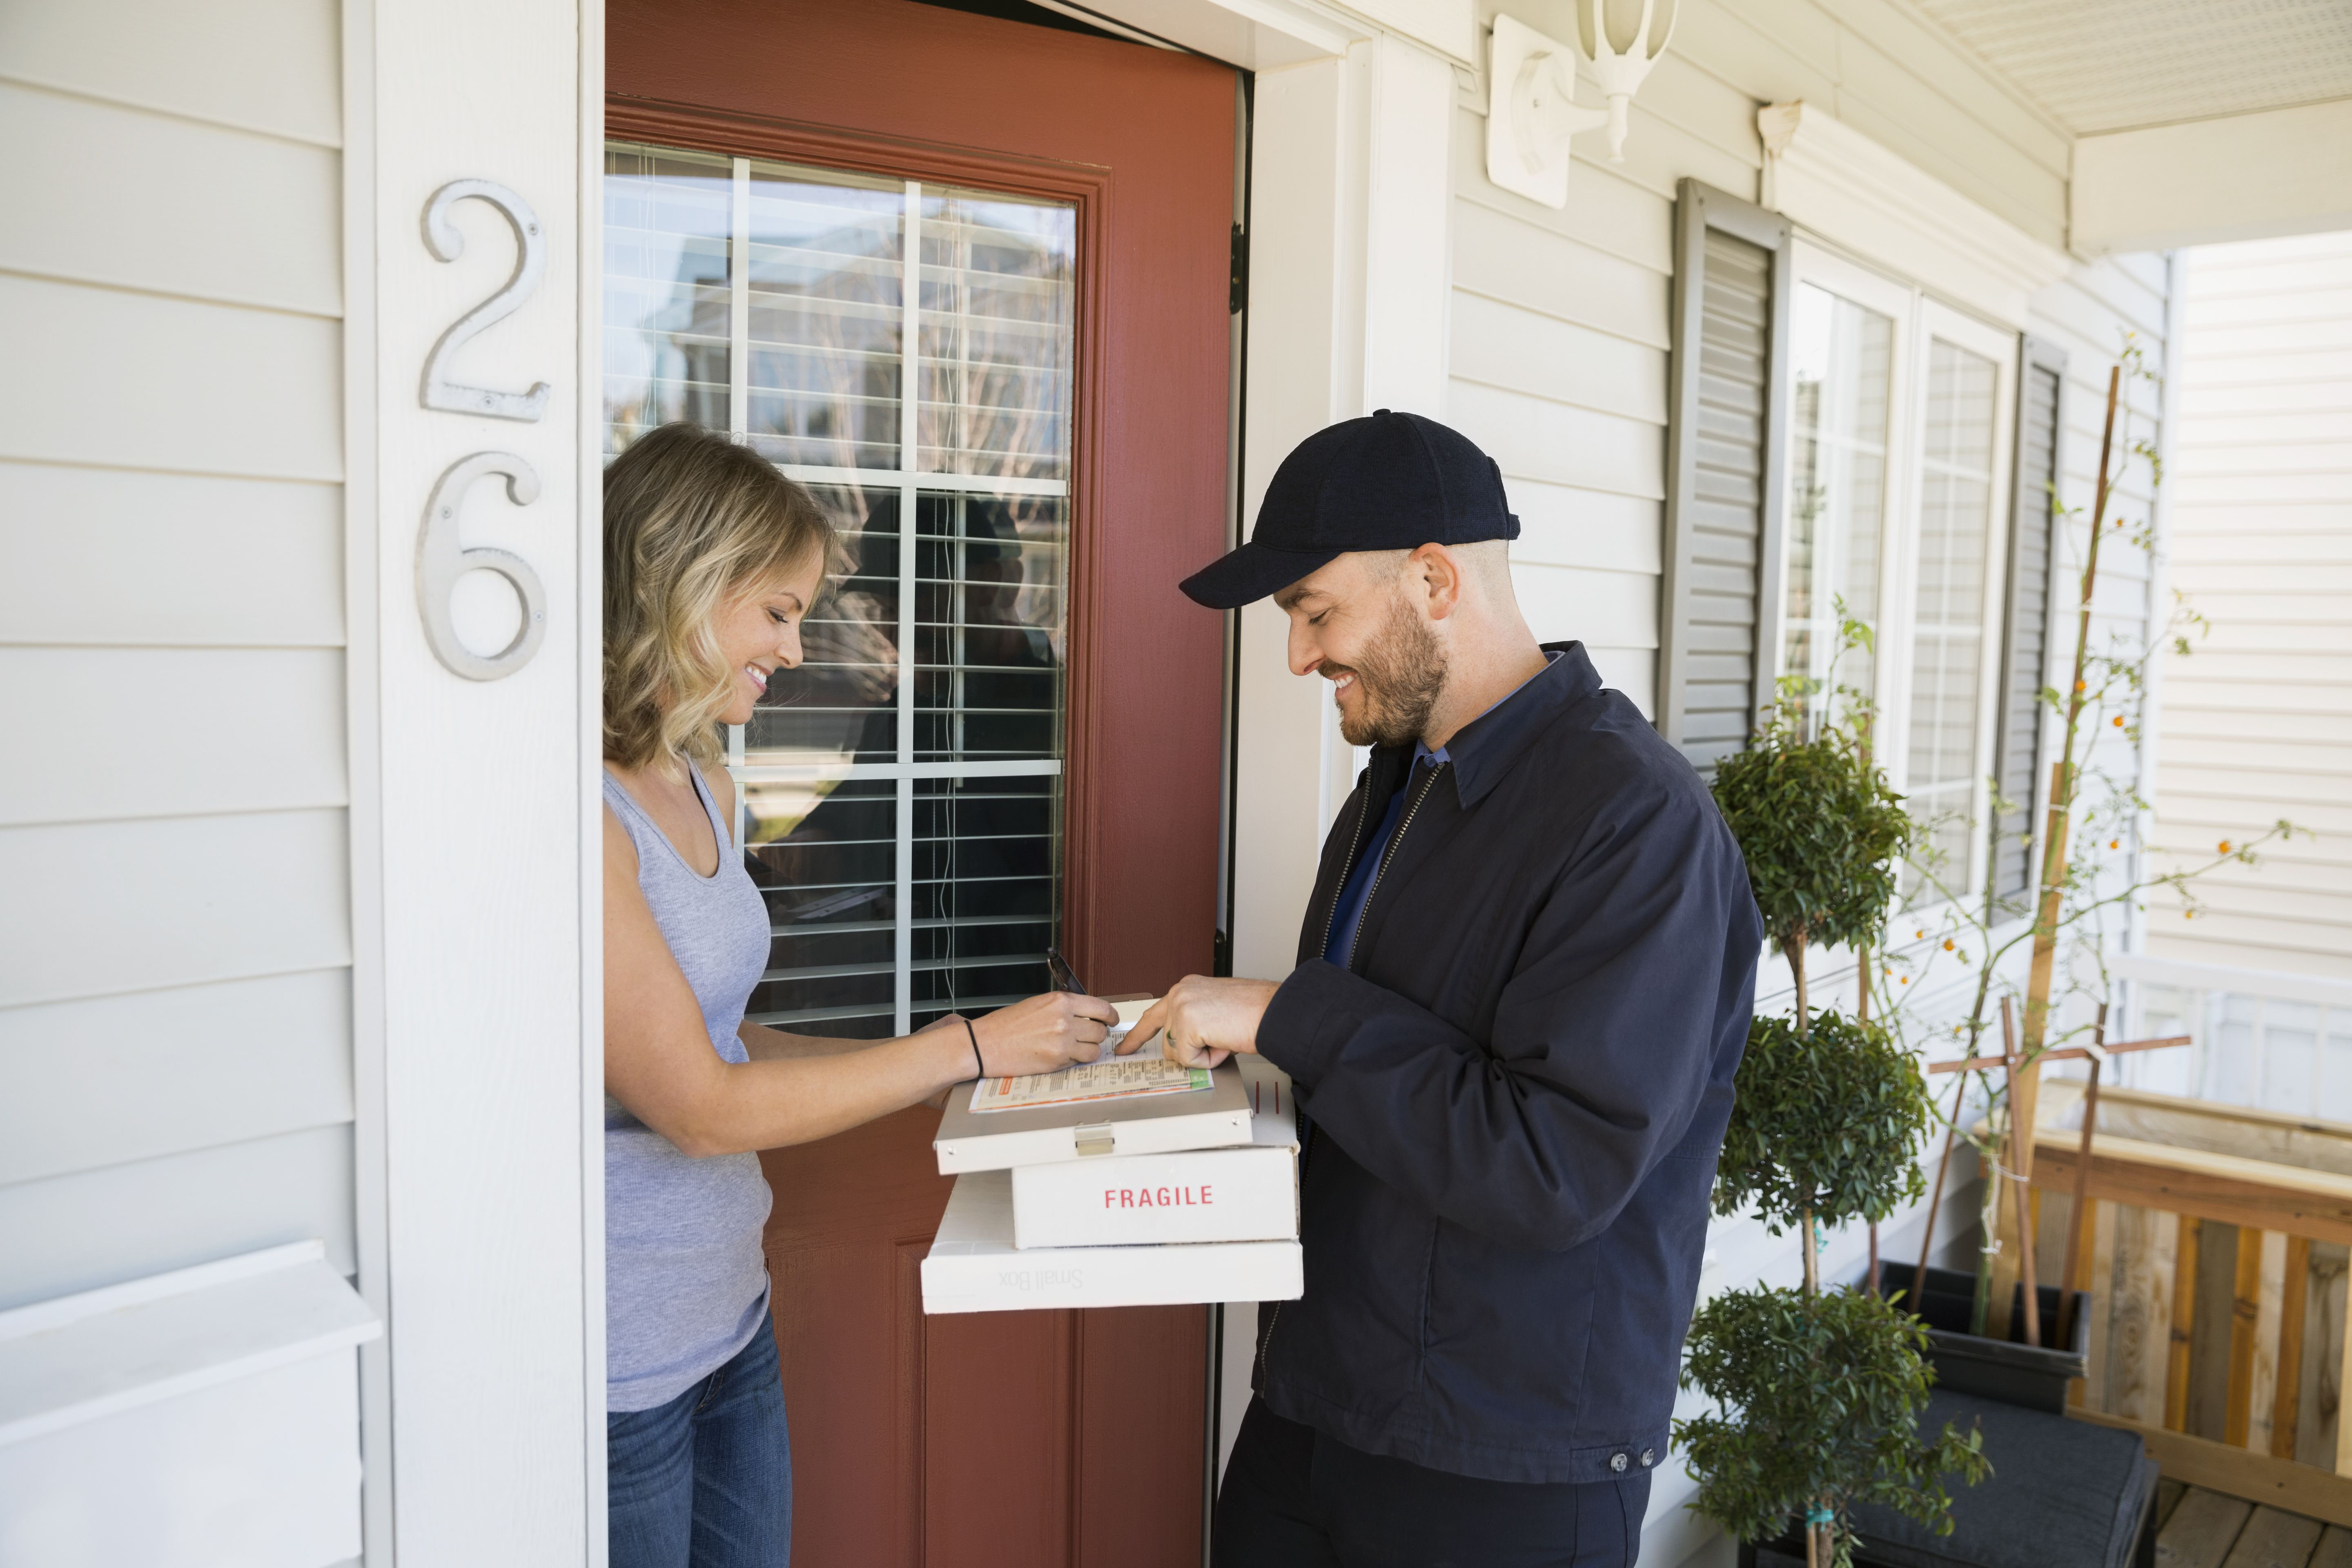 Woman signing for delivery at front door